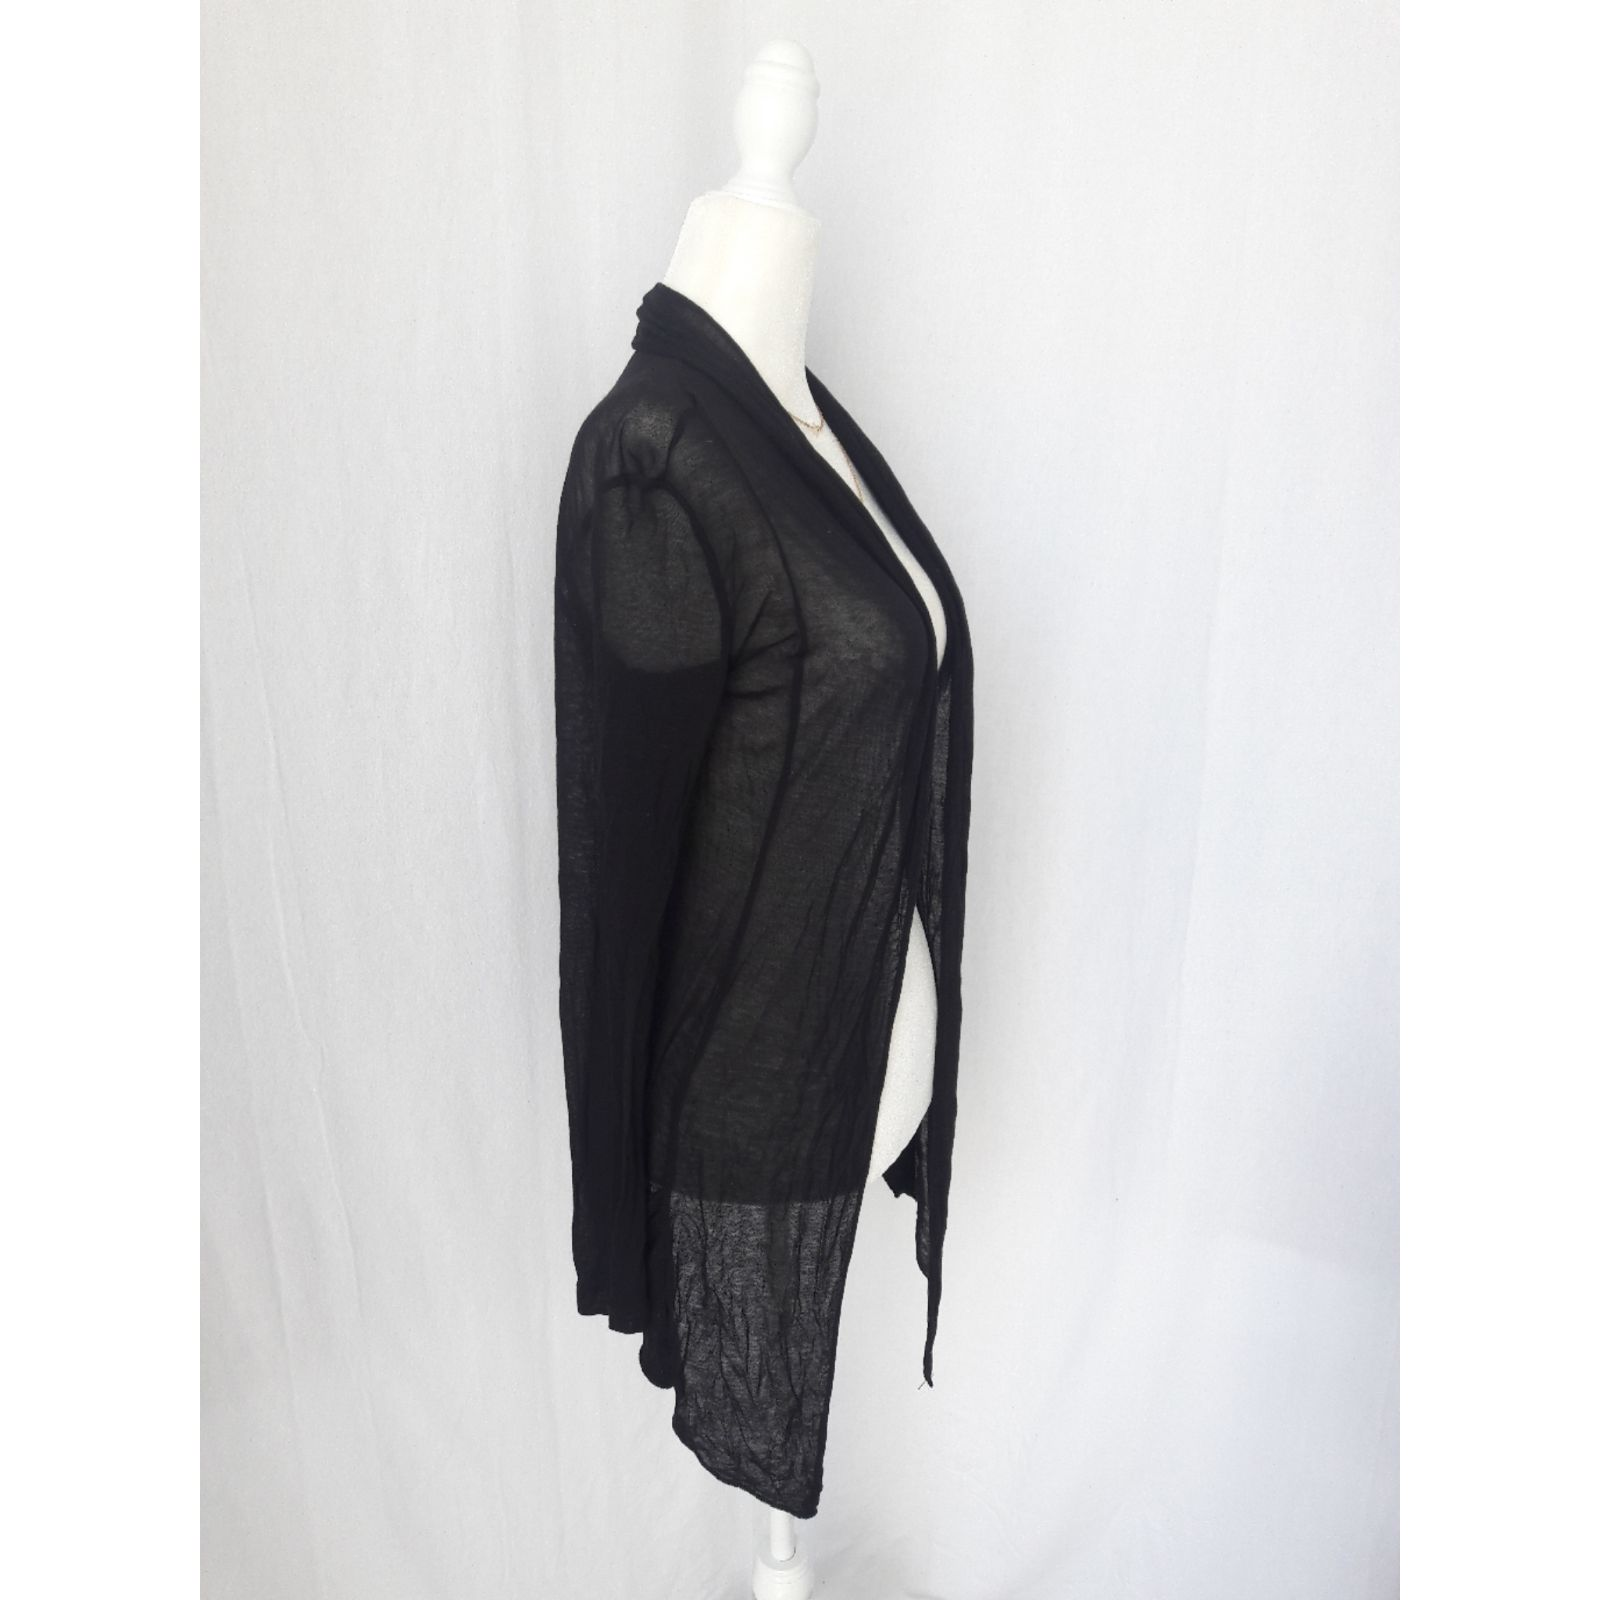 Forever 21 lightweight black cardigan - Mercari: BUY & SELL THINGS ...